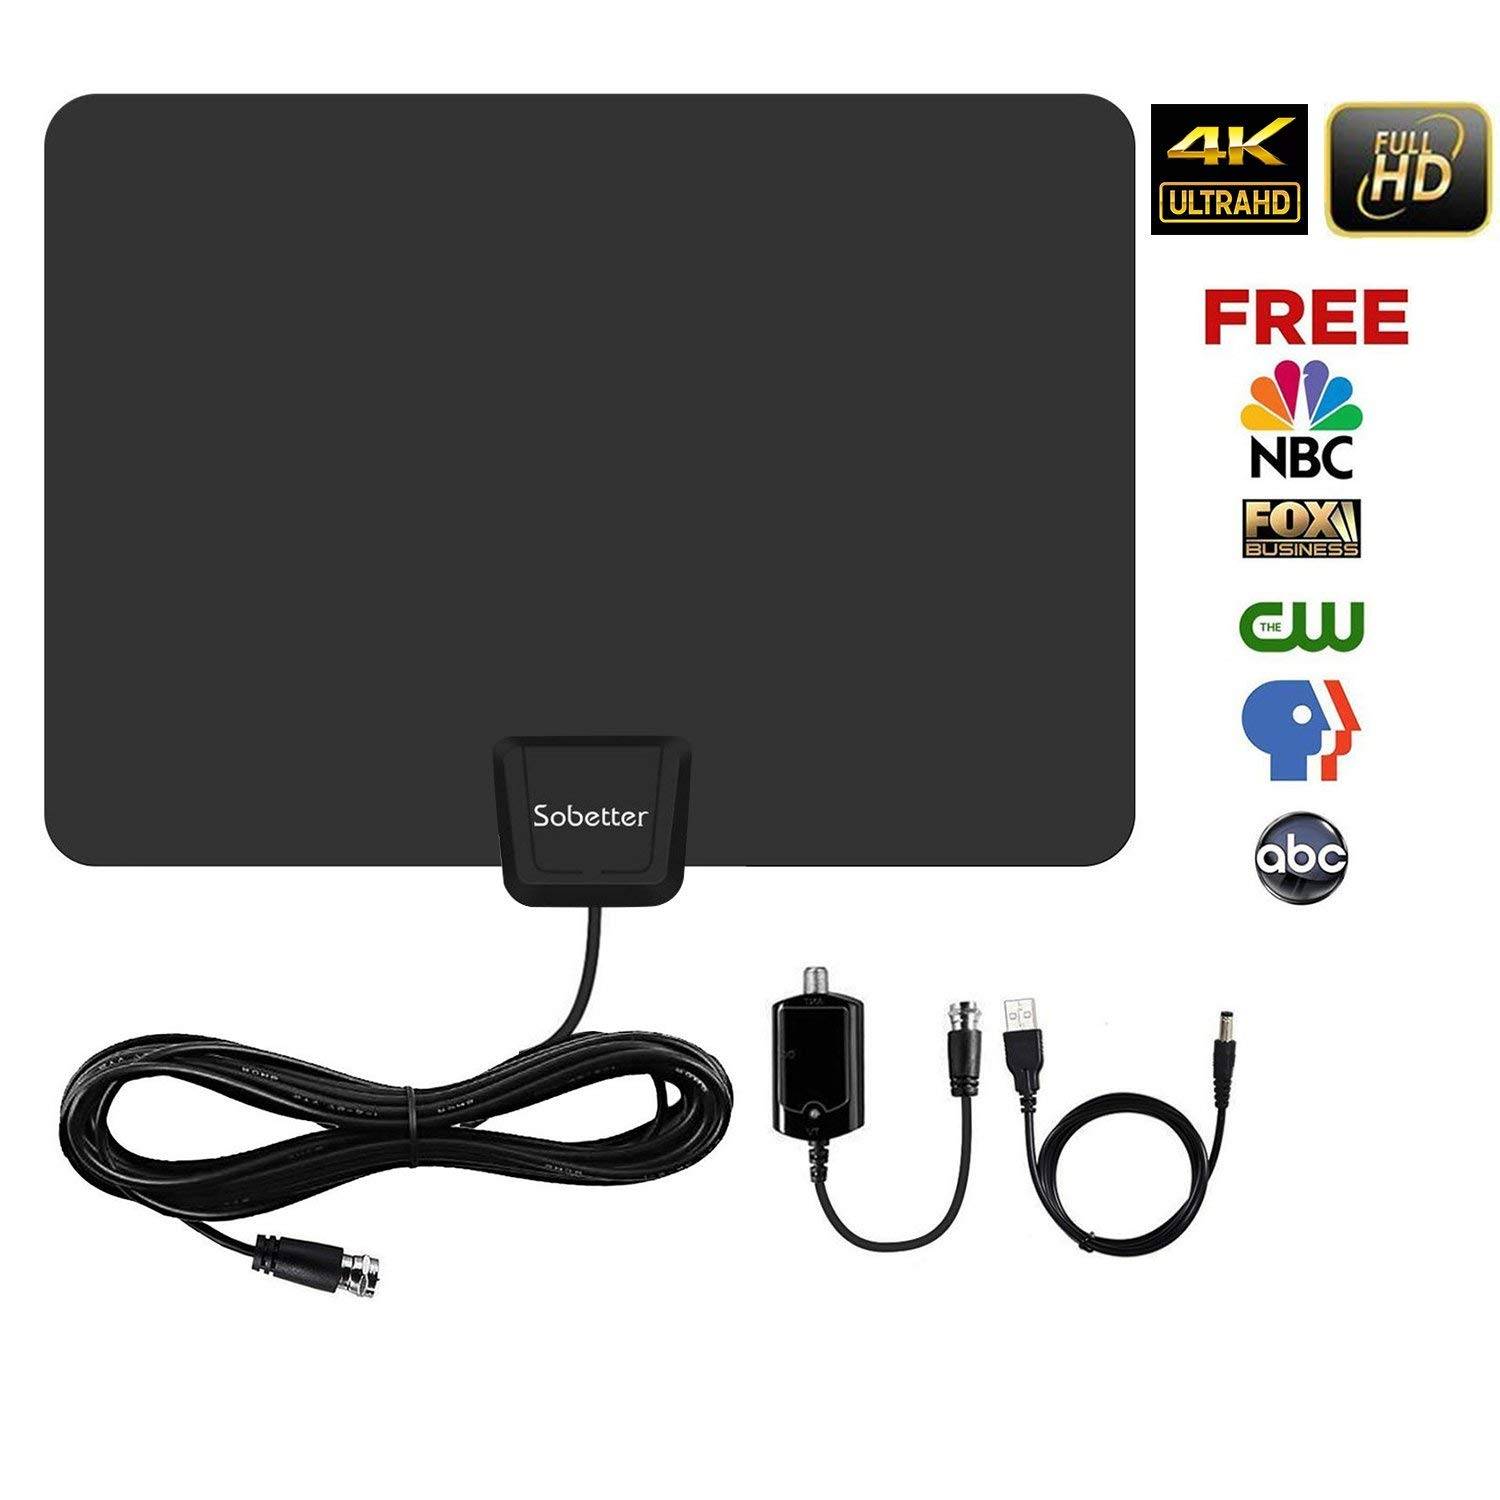 TV Antenna - Digital HD TV Antenna 50-80 Miles Range [2018 Upgraded] Compatible 4K 1080P Free TV Channels,Powerful Detachable Amplifier Signal Booster,Longer Coax Cable for All TVs